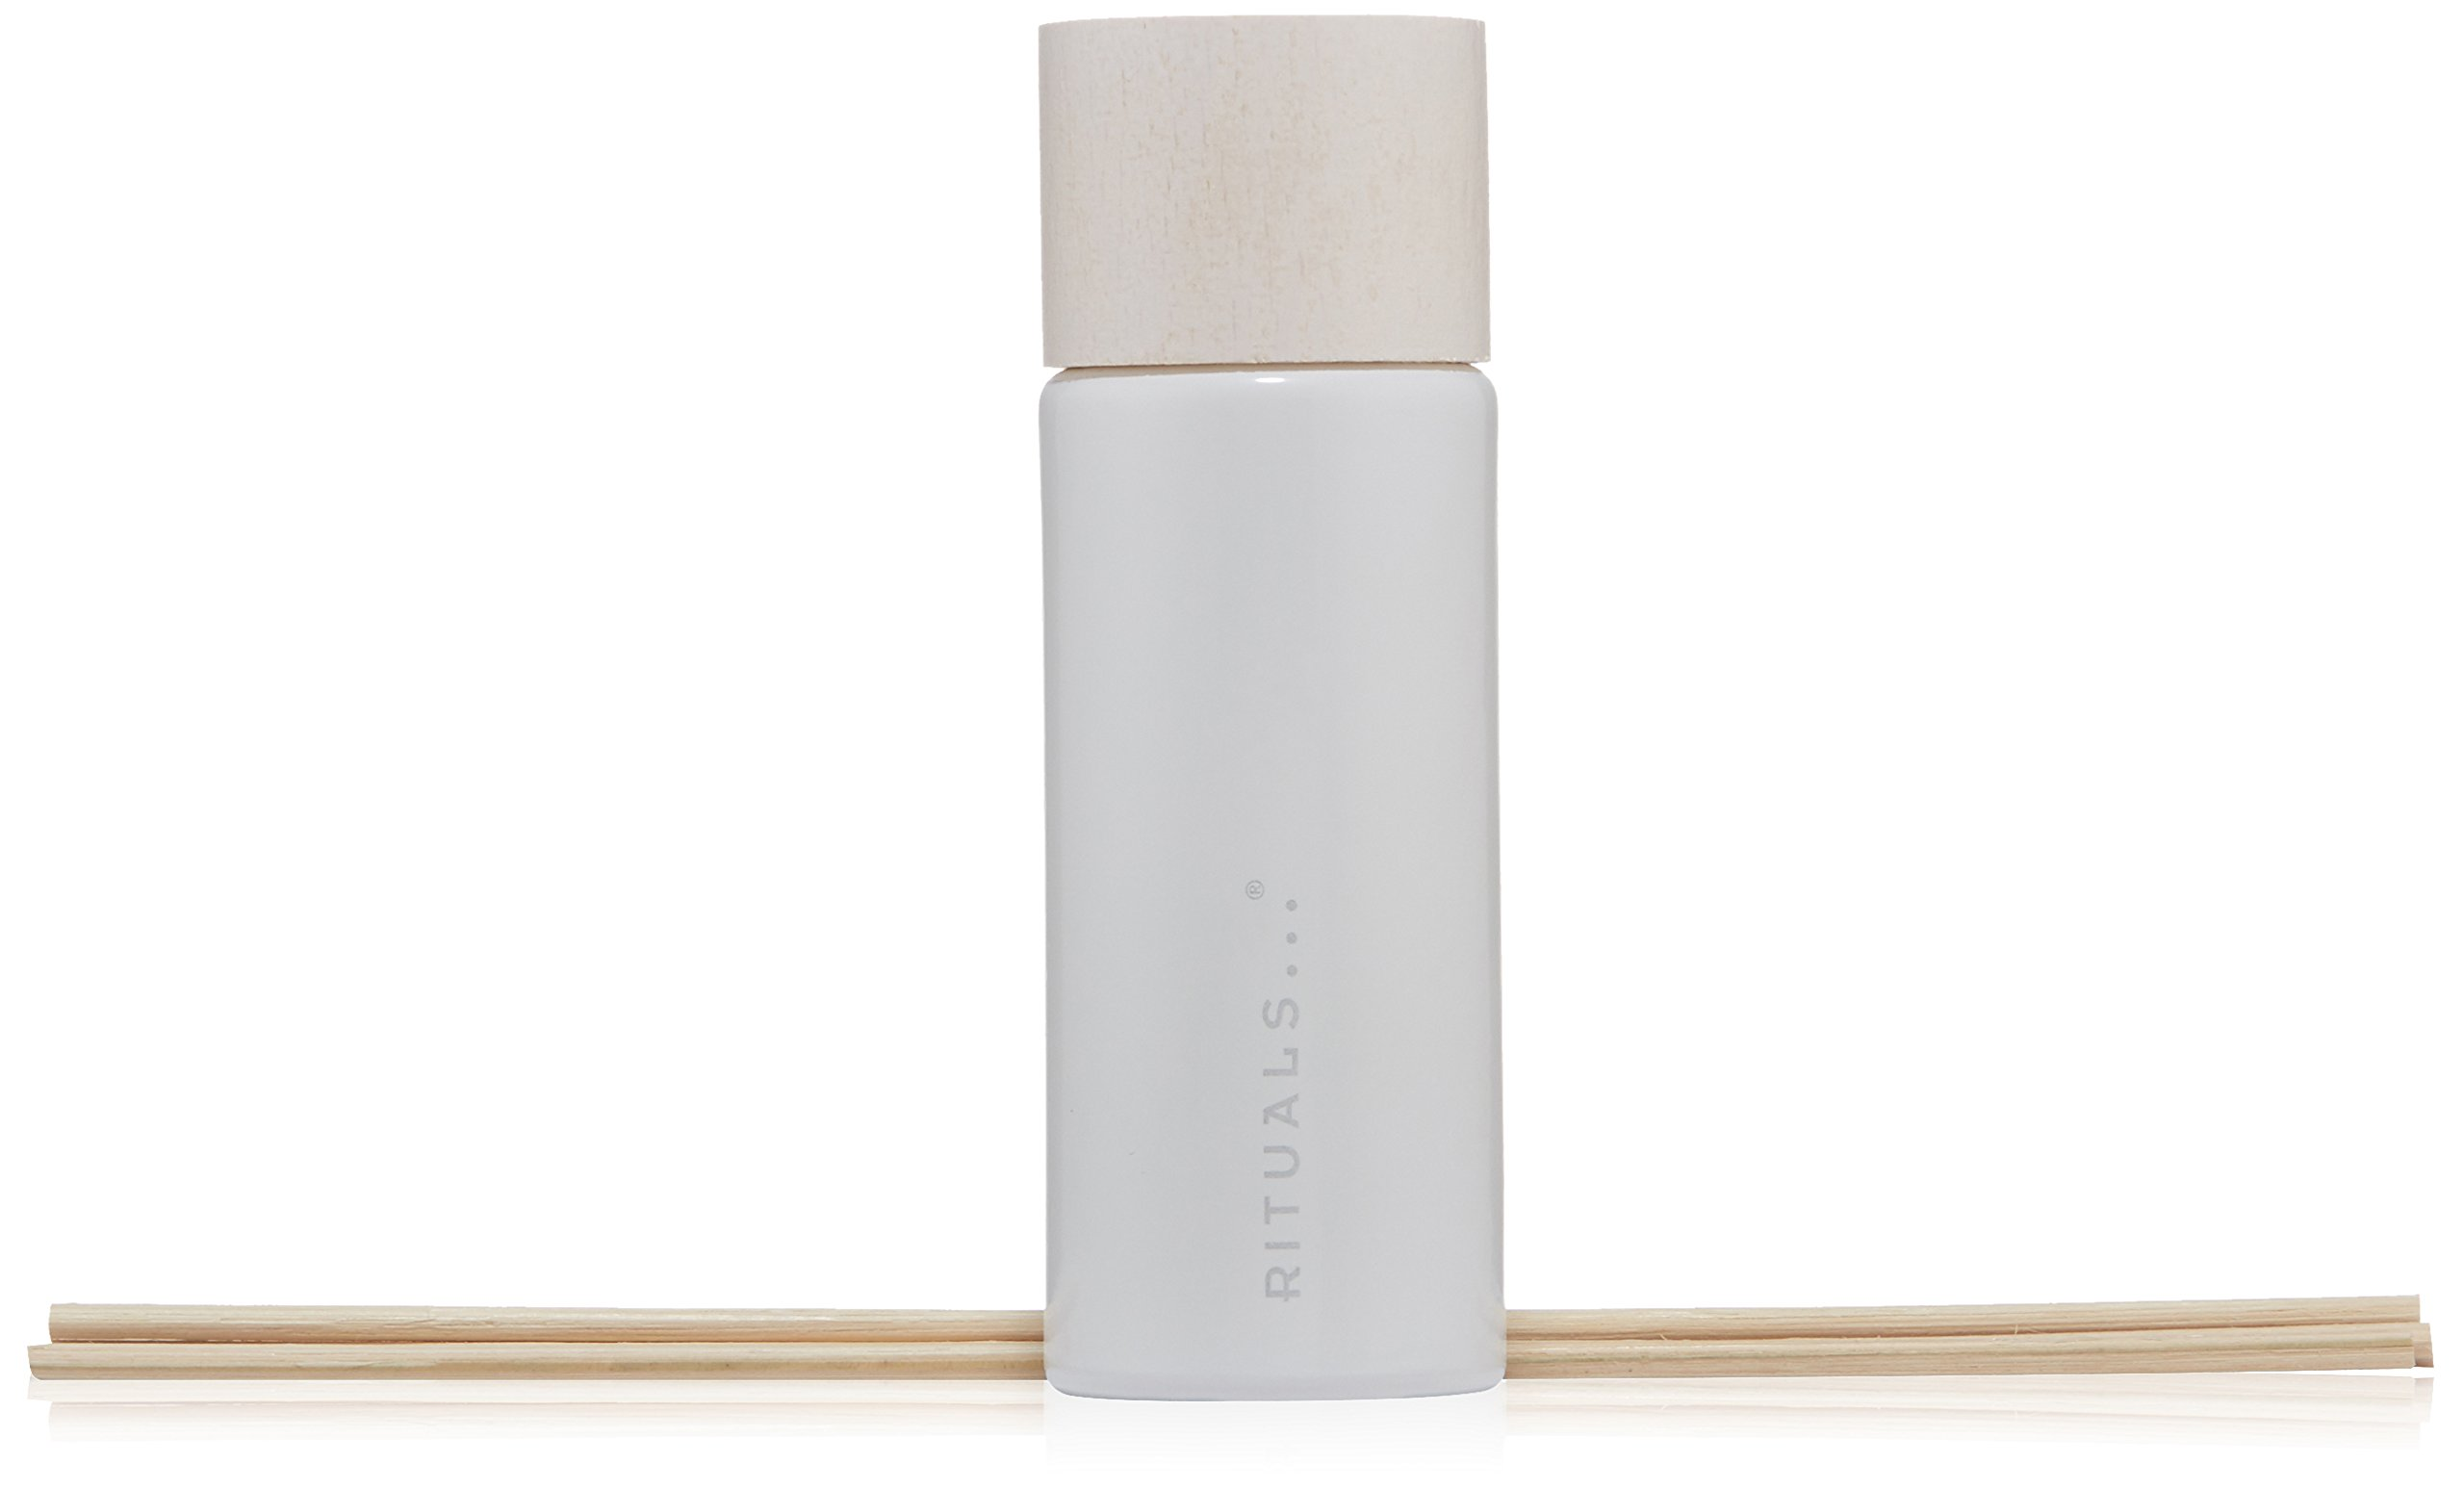 Rituals The Ritual of Sakura Mini Fragrance Sticks, 1 oz.